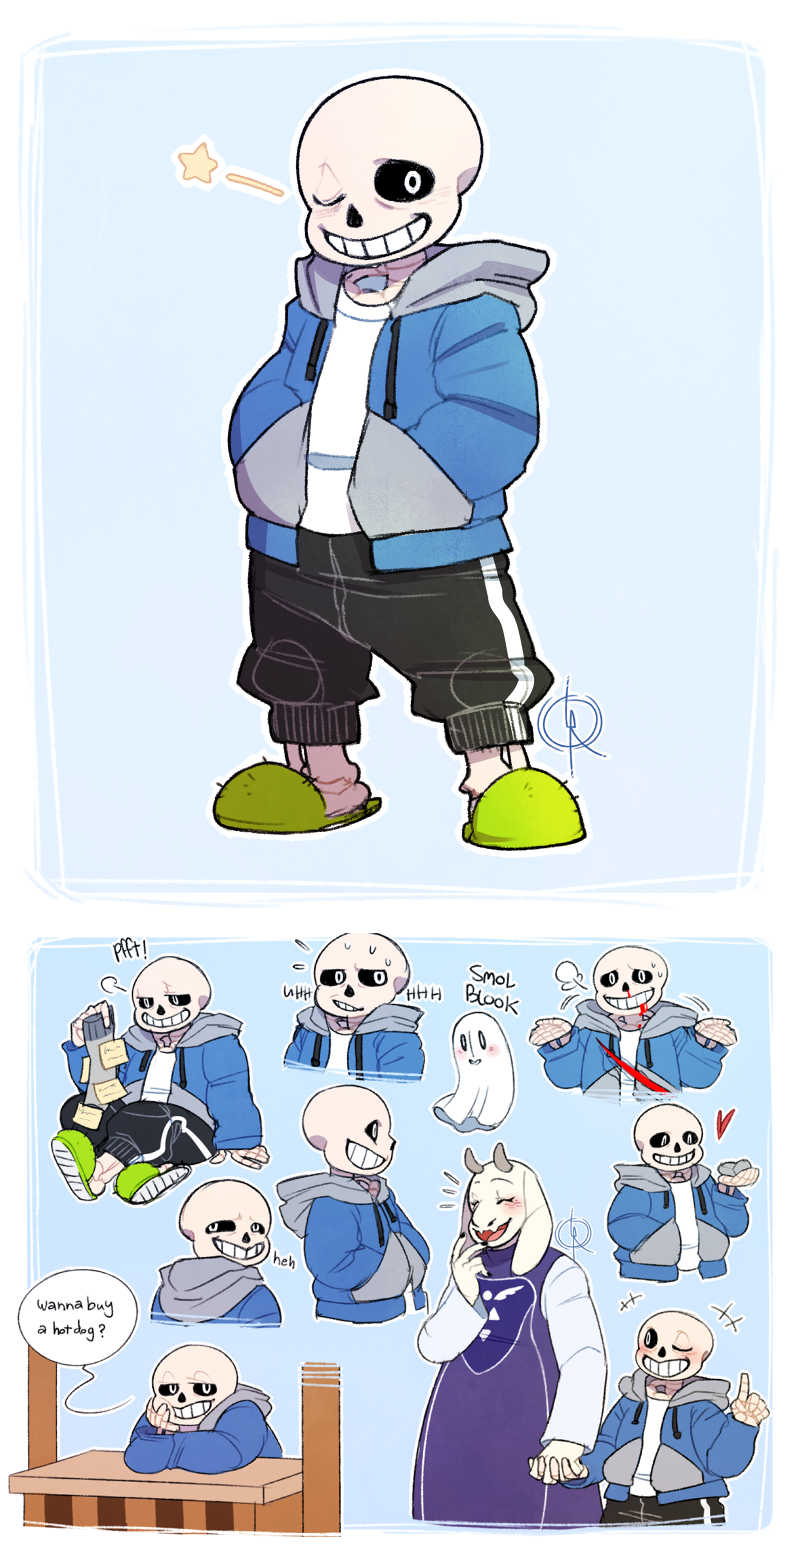 Undertale Sans The Skeleton SPOILER WARNING Weasyl - Skeletons favourite childhood cartoon characters